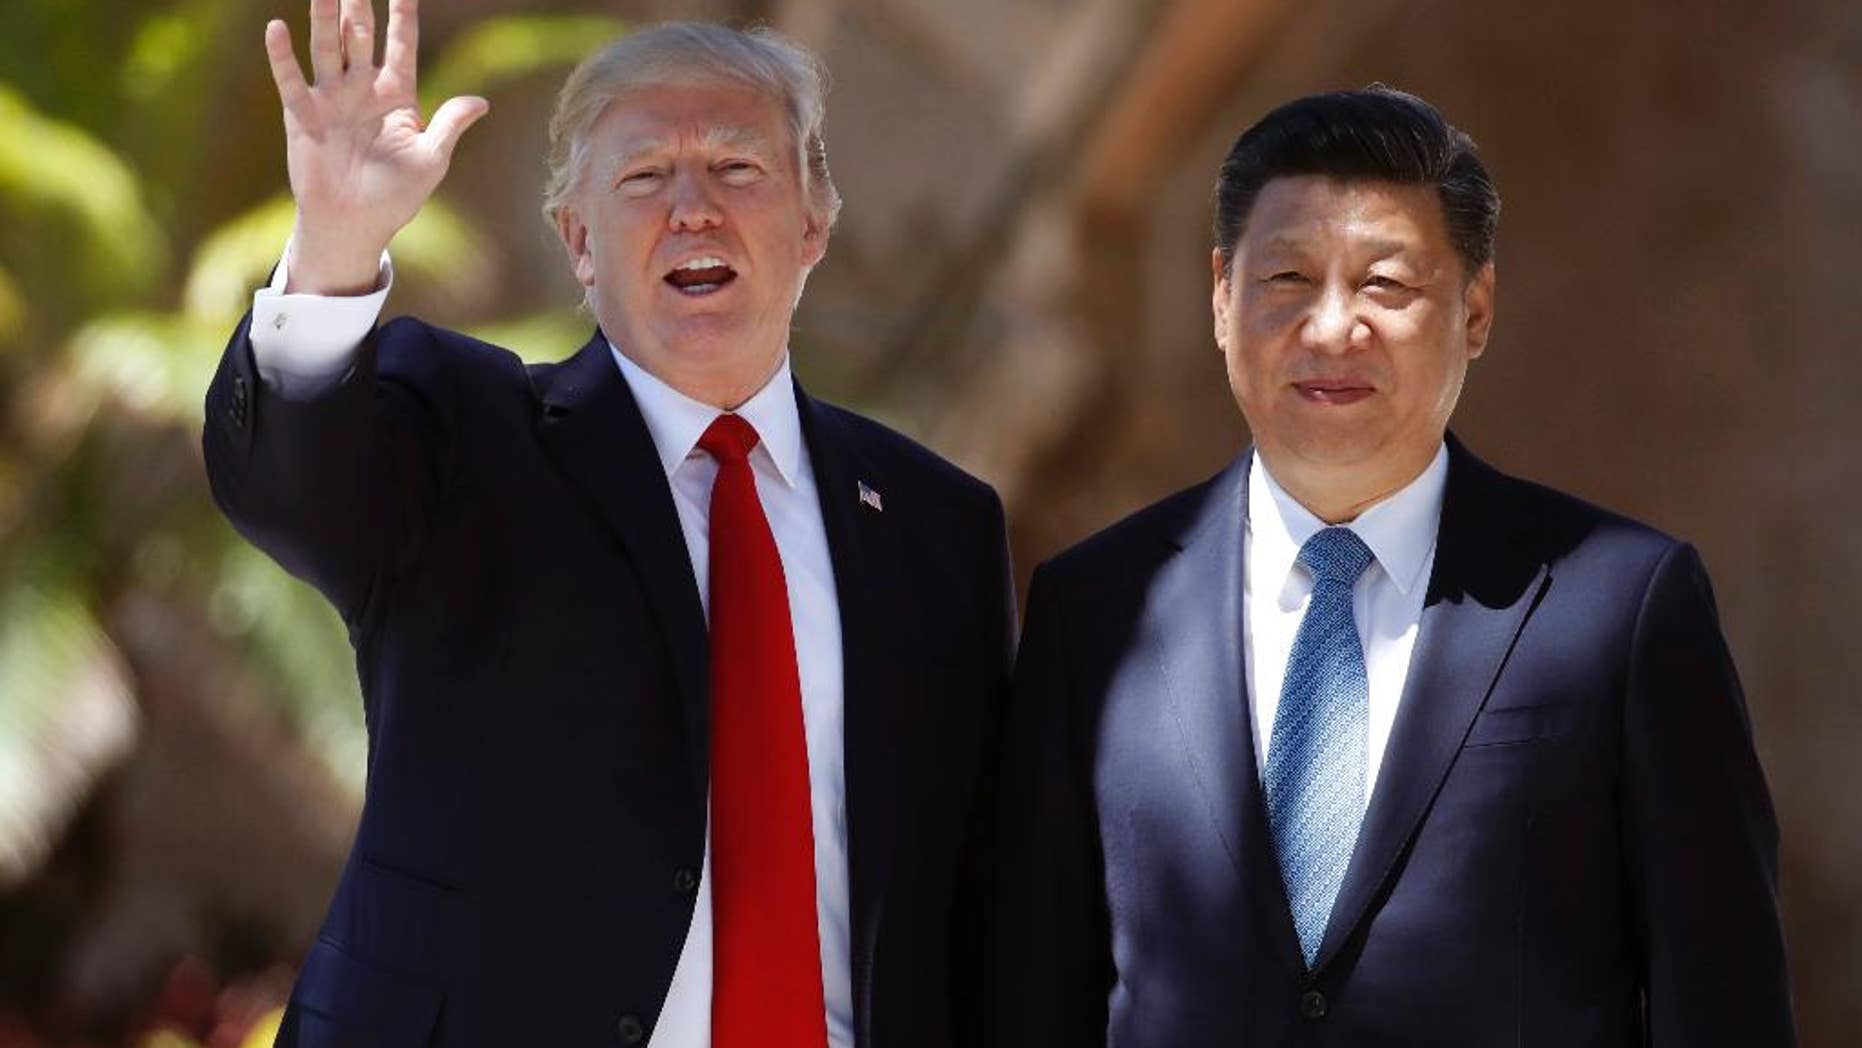 "FILE - In this Friday, April 7, 2017, file photo, U.S. President Donald Trump, left, and Chinese President Xi Jinping pause for photographs at Mar-a-Lago in Palm Beach, Fla. North Korea often marks significant dates by displaying military capability, and South Korean officials say there's a chance the country will conduct its sixth nuclear test or its maiden test launch of an ICBM around the founding anniversary of its military on Tuesday, April 25. Trump spoke by phone with both the Japanese and Chinese leaders Monday, April 24. China's official broadcaster CCTV quoted Xi telling Trump that China strongly opposed North Korea's nuclear weapons program and hoped ""all parties will exercise restraint and avoid aggravating the situation."" (AP Photo/Alex Brandon, File)"